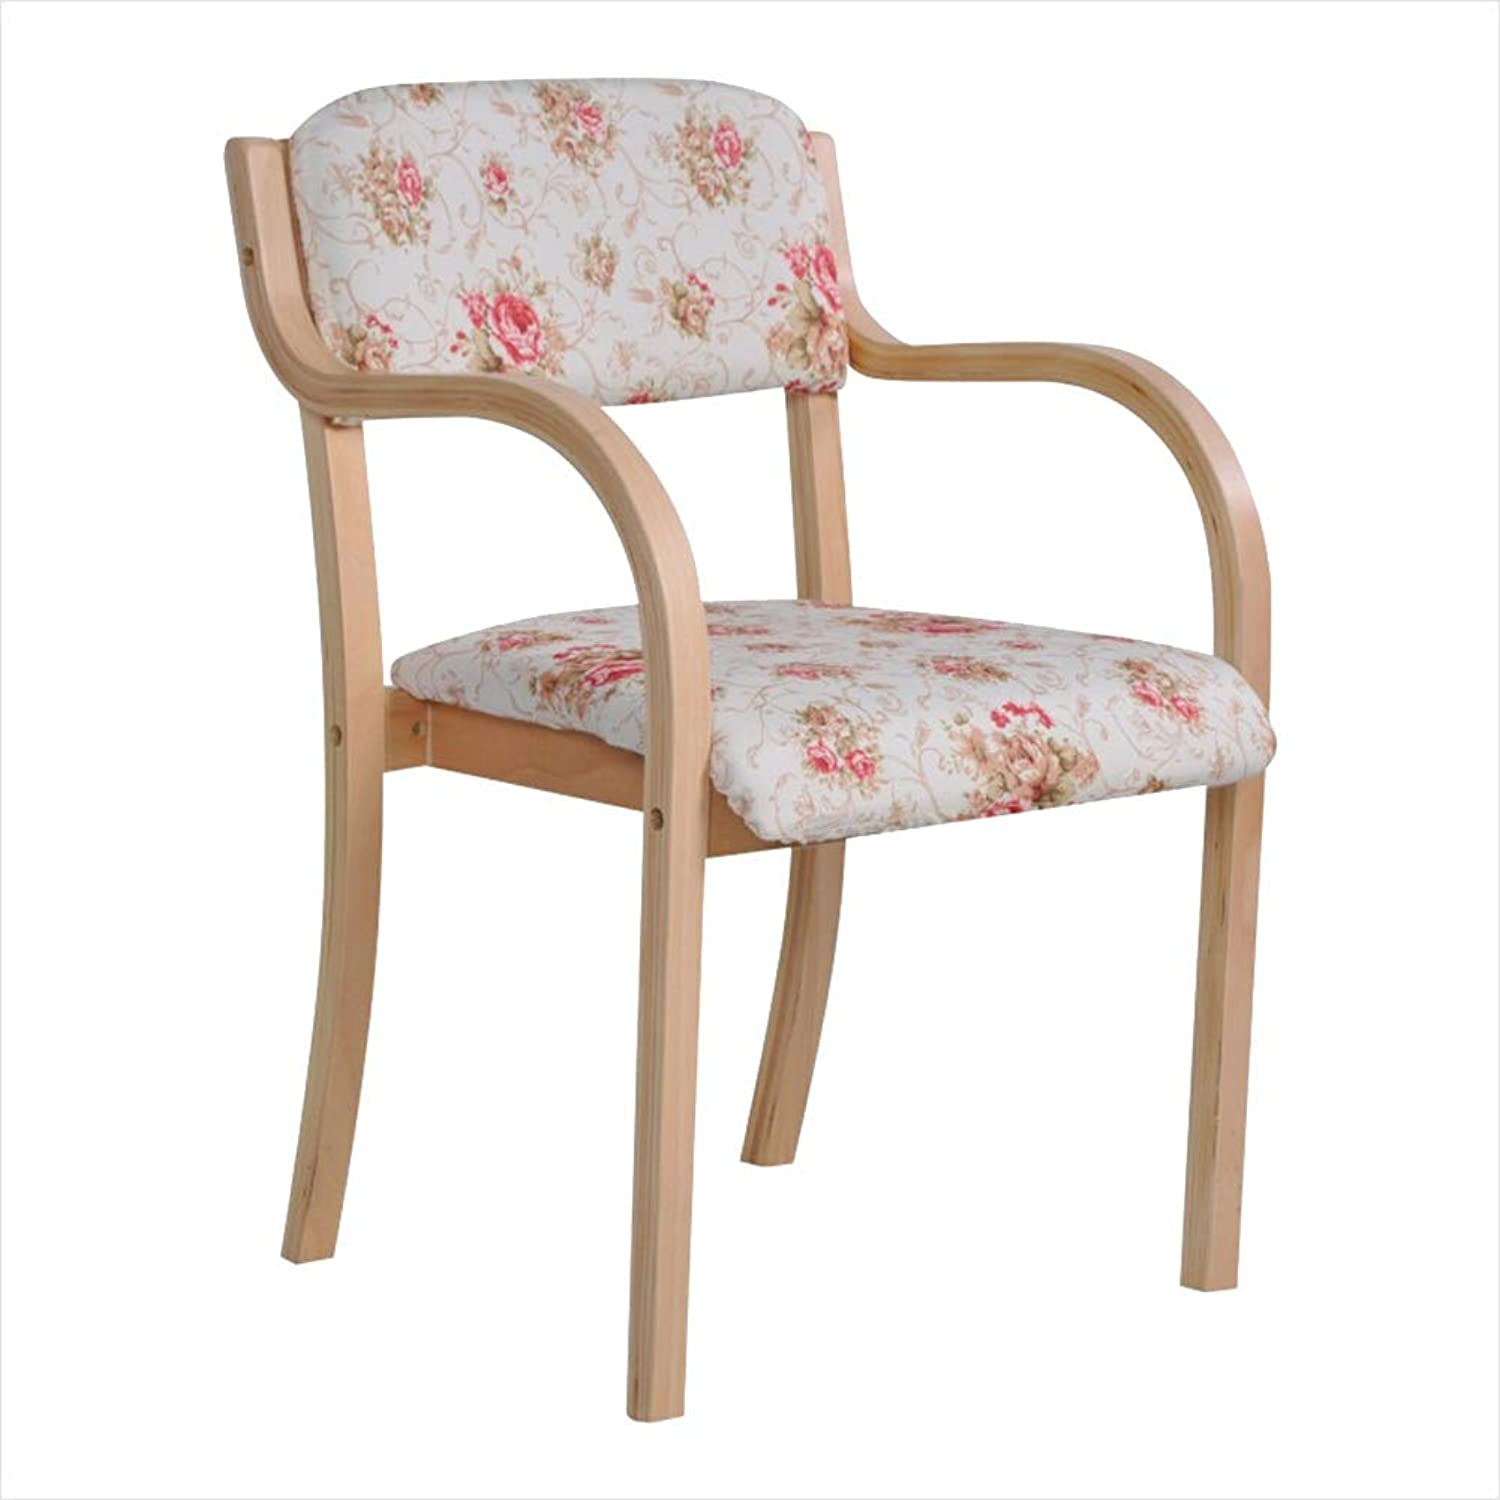 Dining Chairs Dining Table Chair Kitchen Chairs-Solid Wood Chair Dining Chair Leisure Chair Study Chair Home Chair Modern Simplicity with Armrests Washable Cotton and Linen HENGXIAO (color    2)